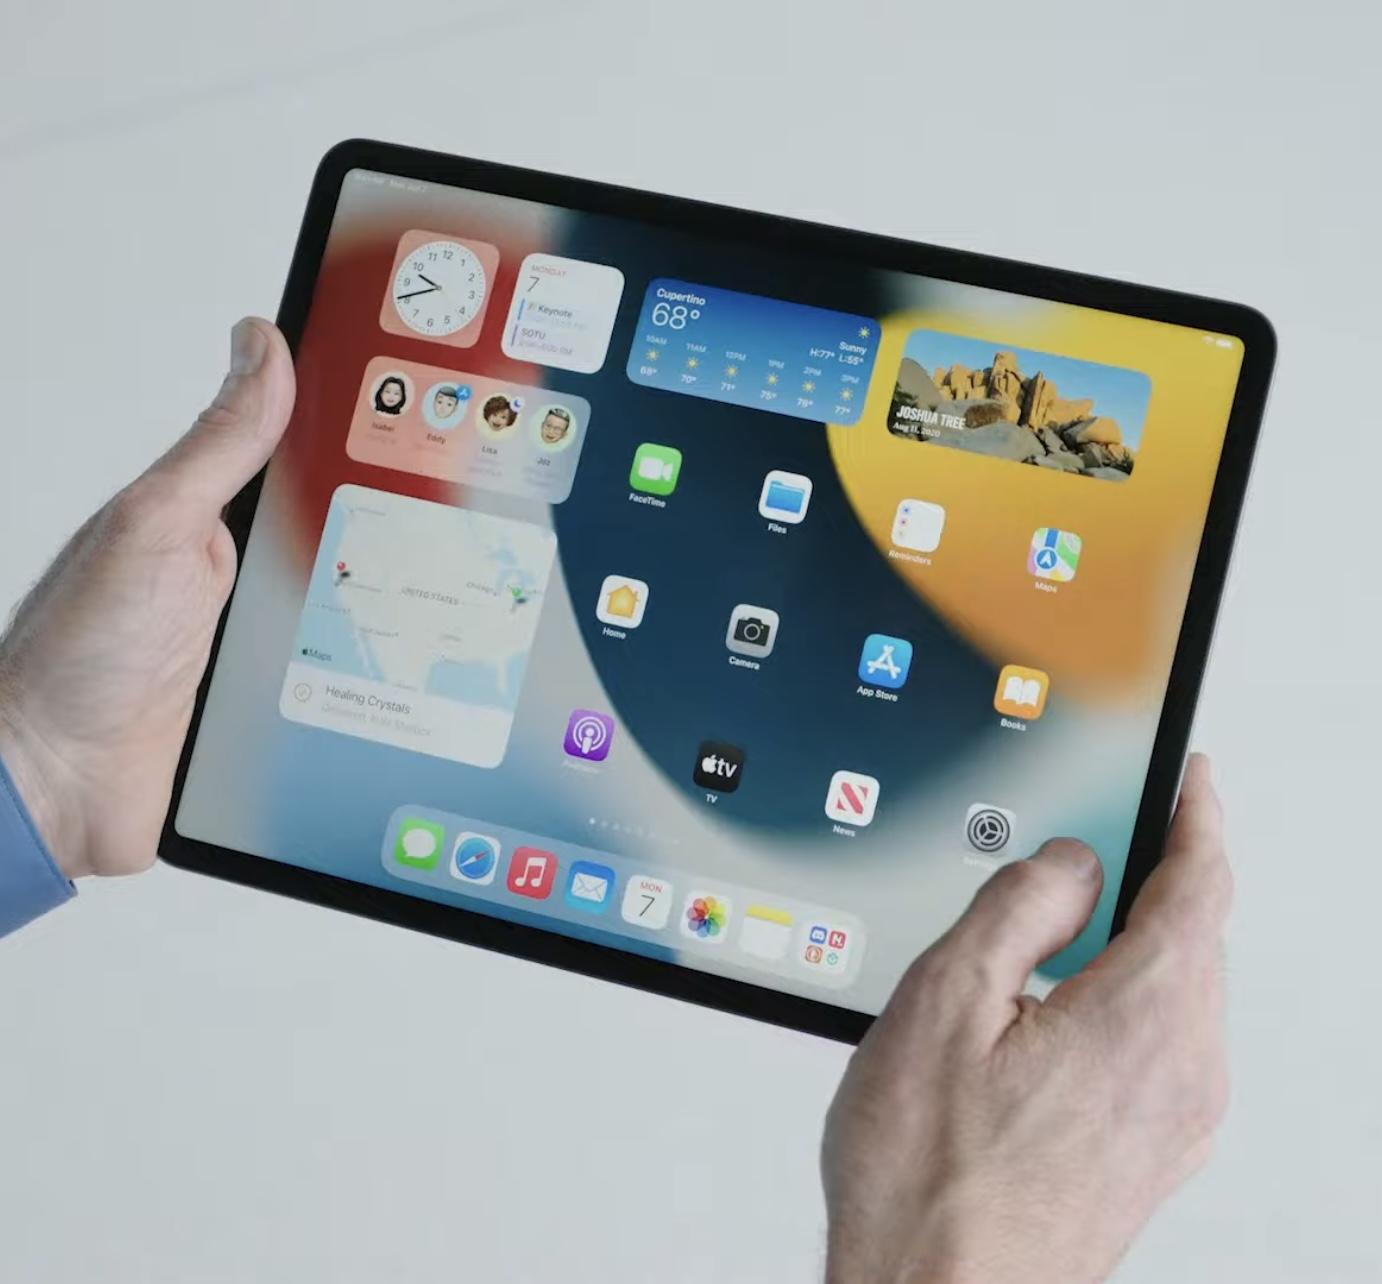 A photo showing an iPad Pro held in hands with the home screen shown with the Weather widget and other widgets and icons